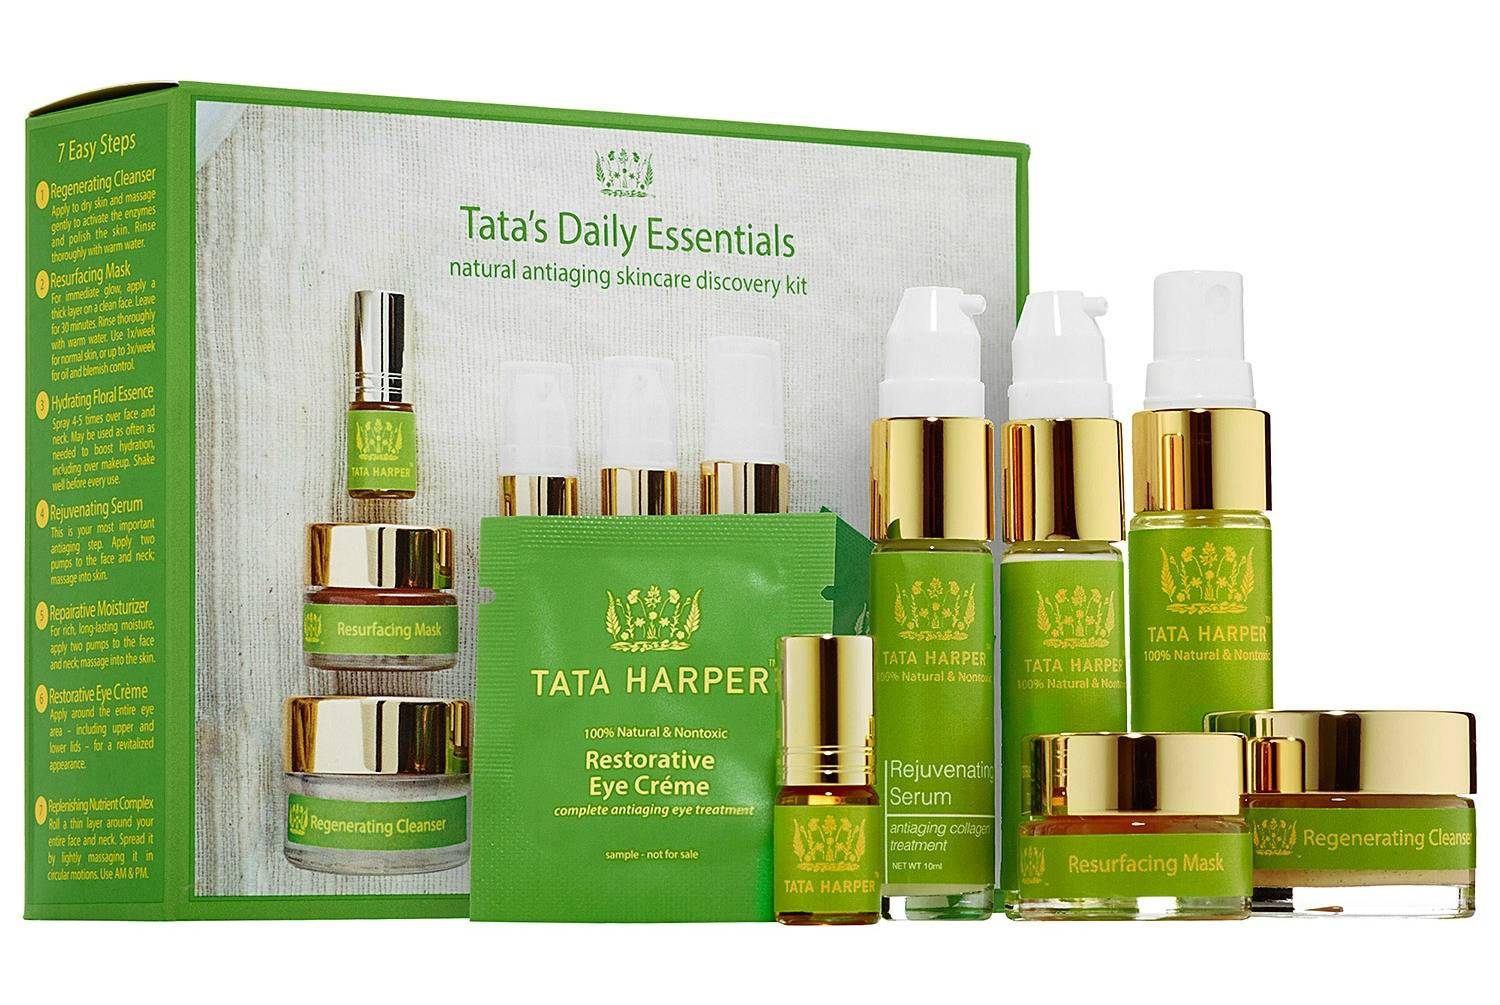 tata harper daily essentials kit mothers day gift guide inhaputeursuit